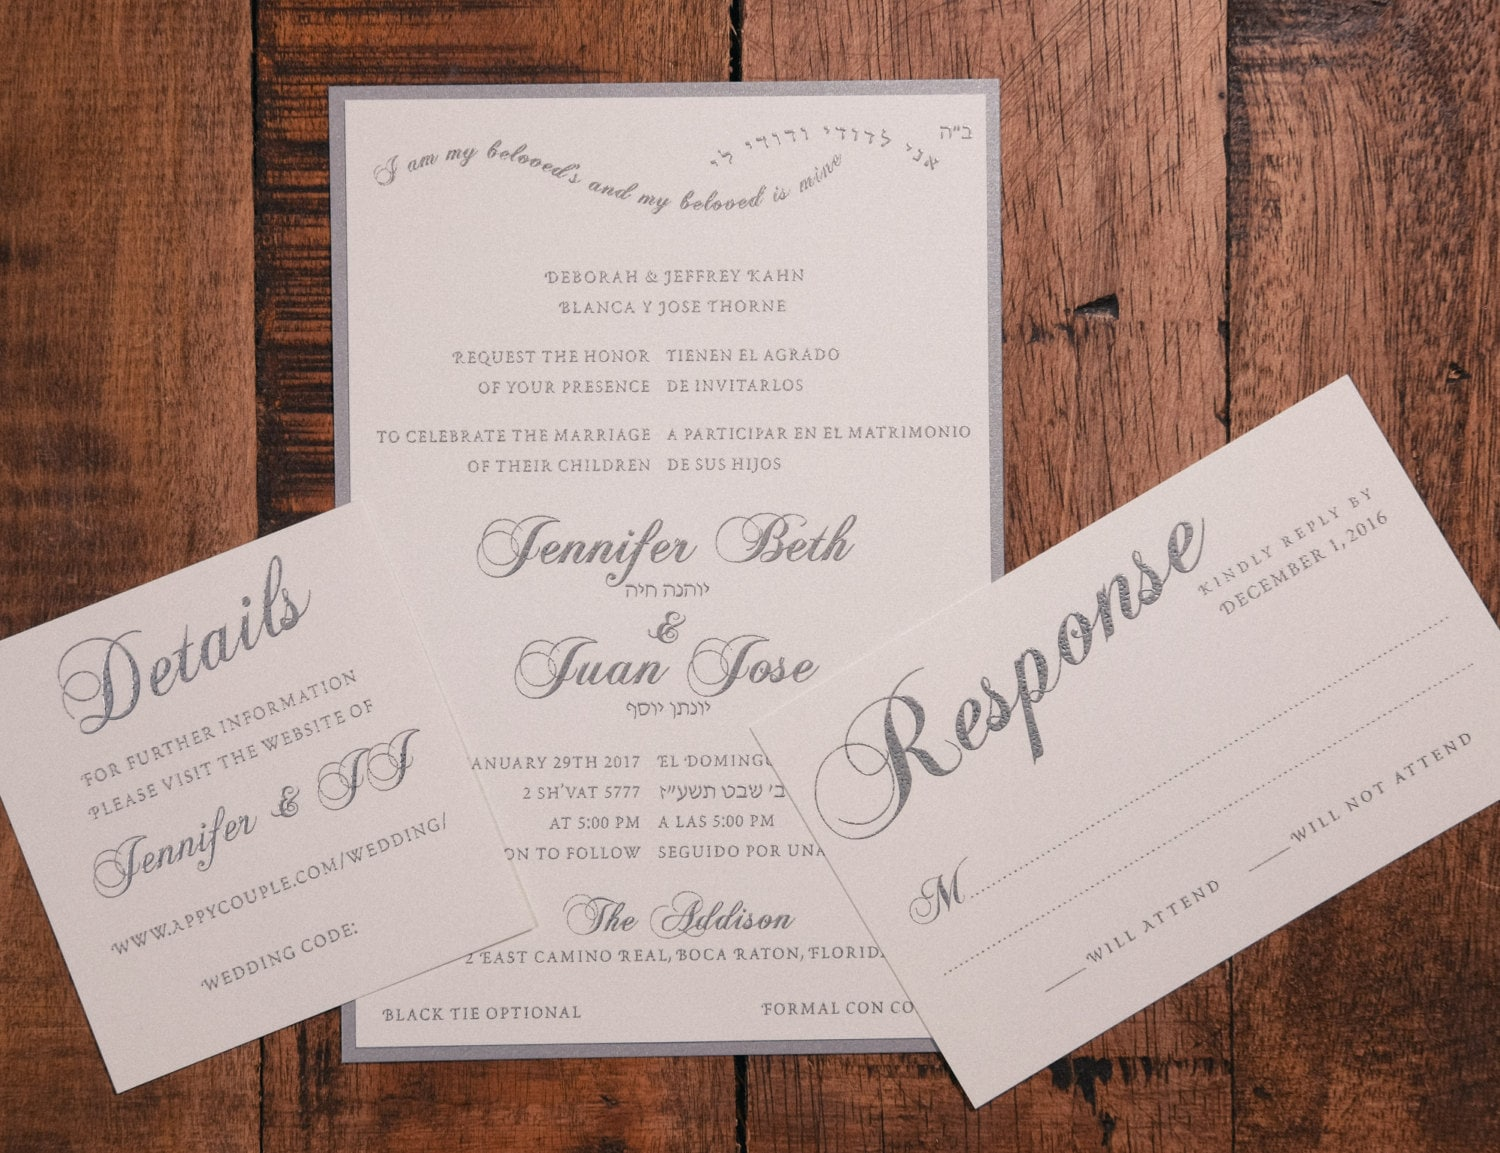 Wedding Invitation Wording English: Bilingual Wedding Invitation Spanish & English Wedding